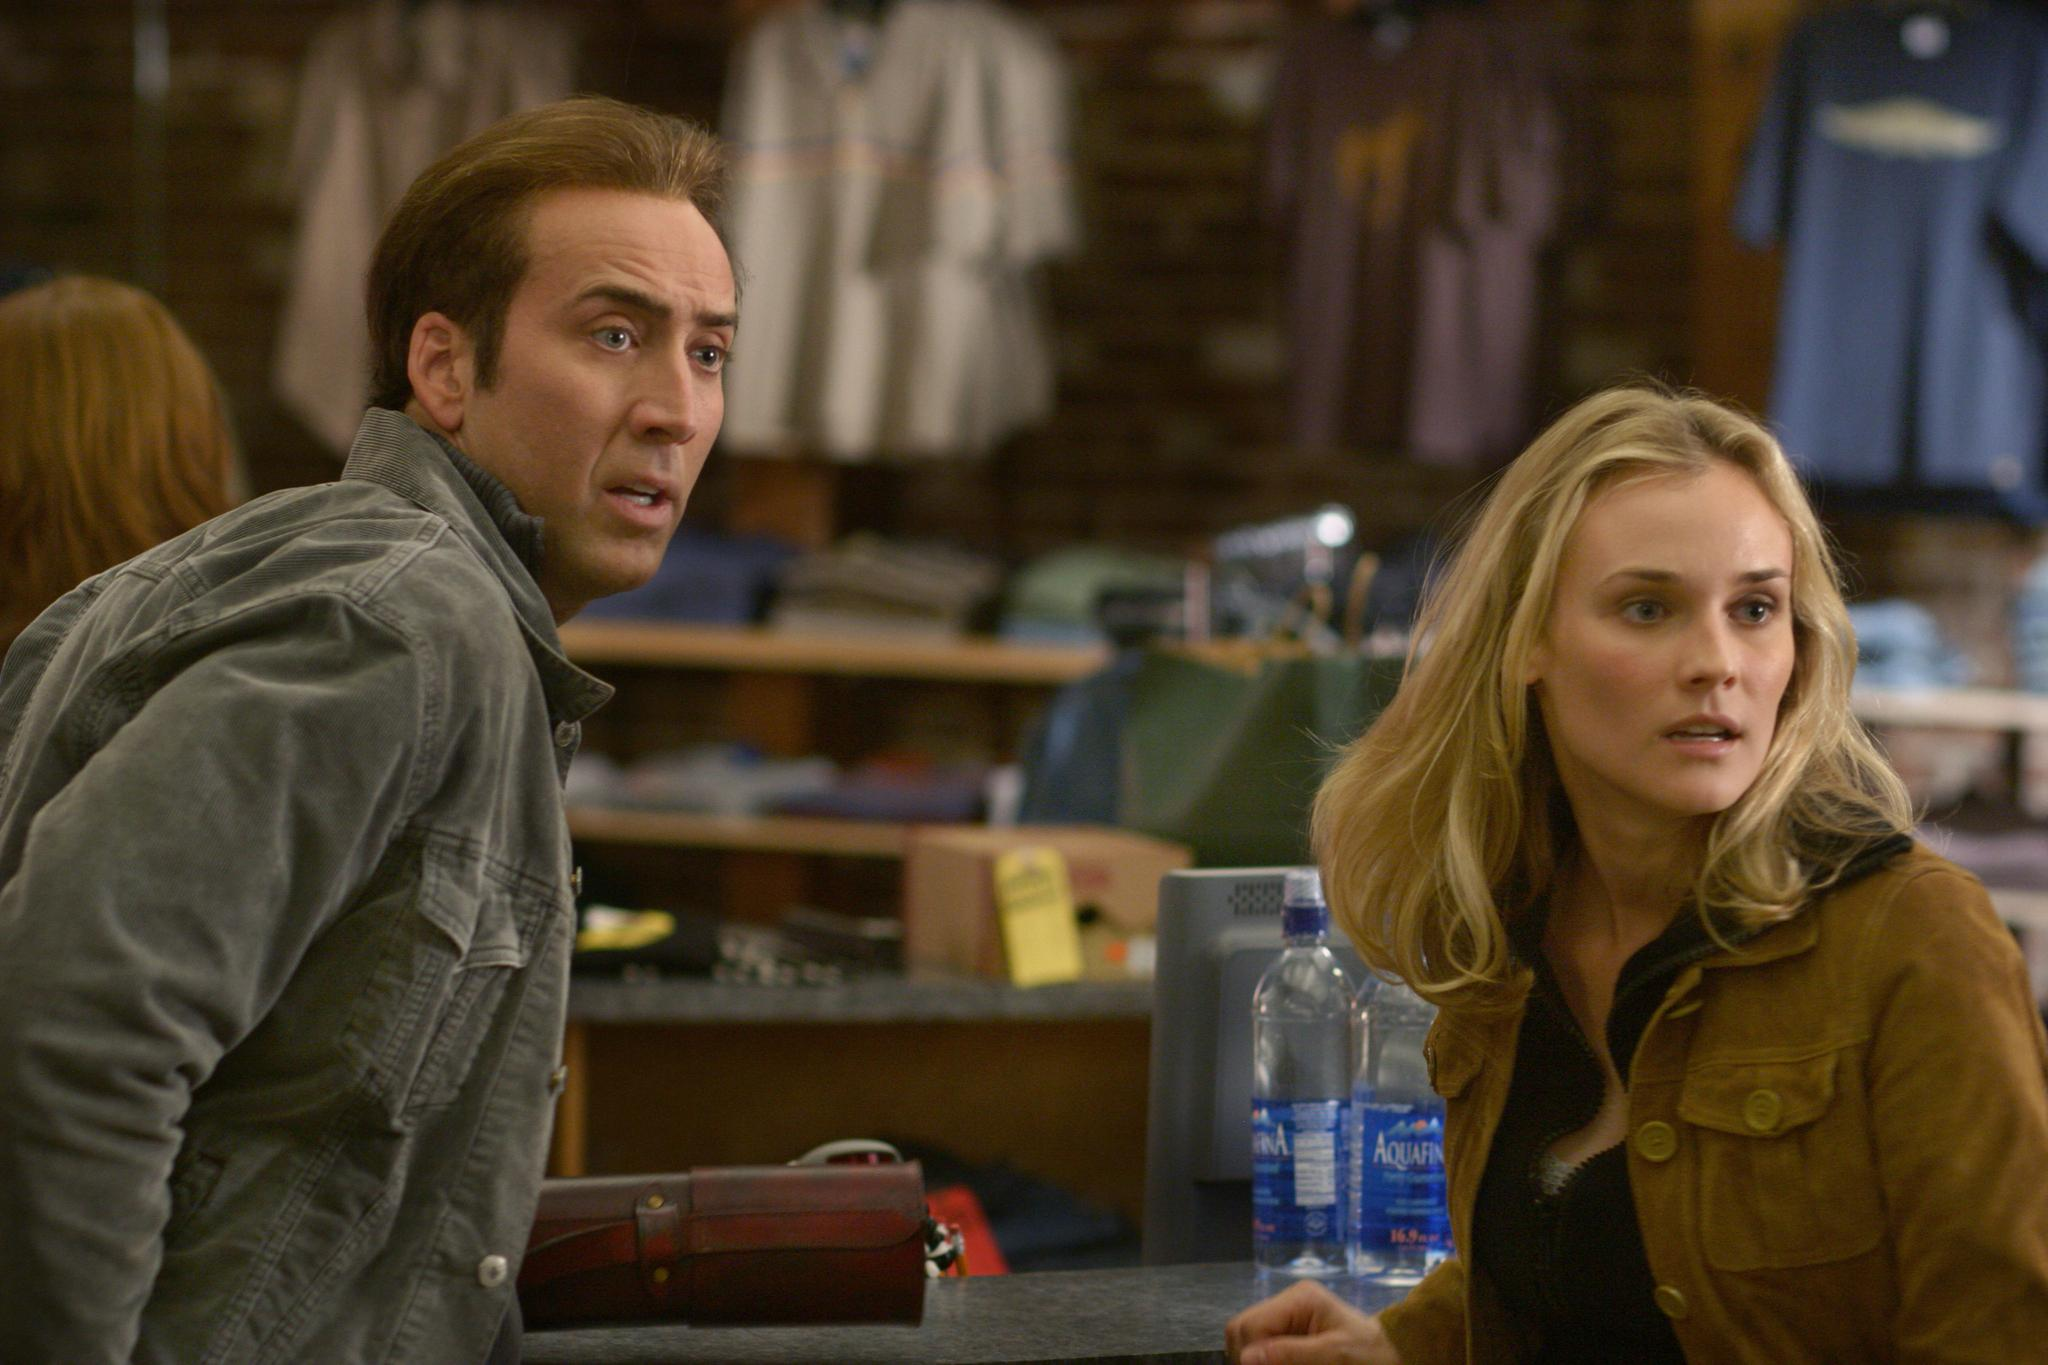 still-of-nicolas-cage-and-diane-kruger-in-national-treasure-(2004)-large-picture